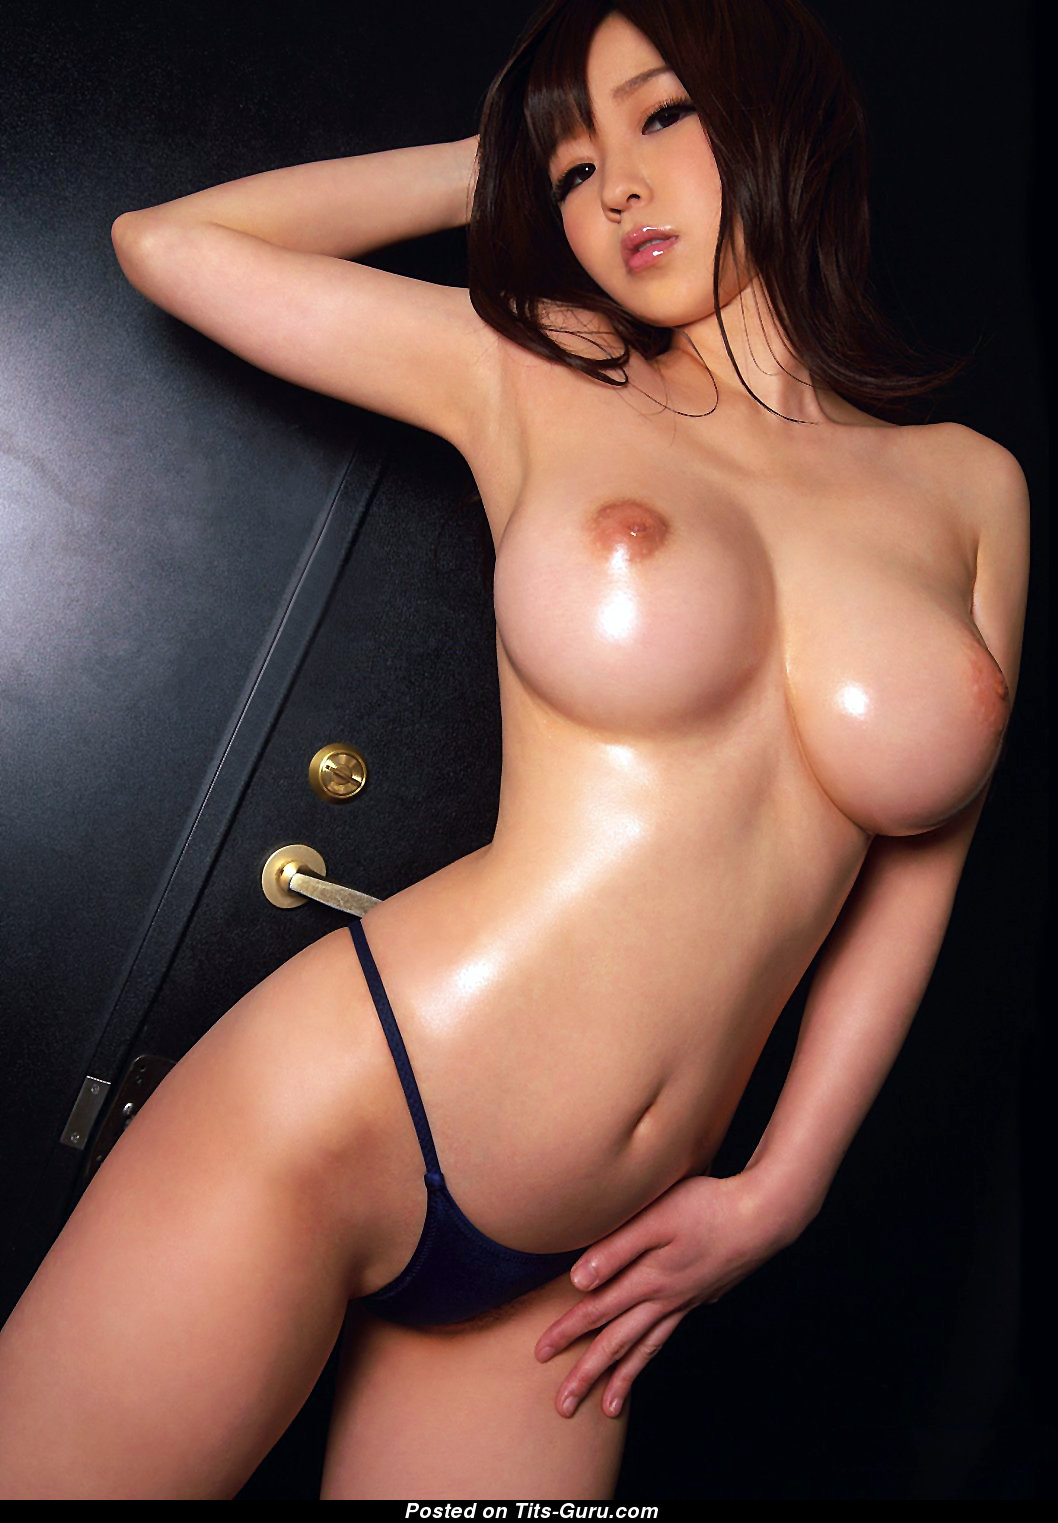 19 yo college girl i met on dating site part 2 9